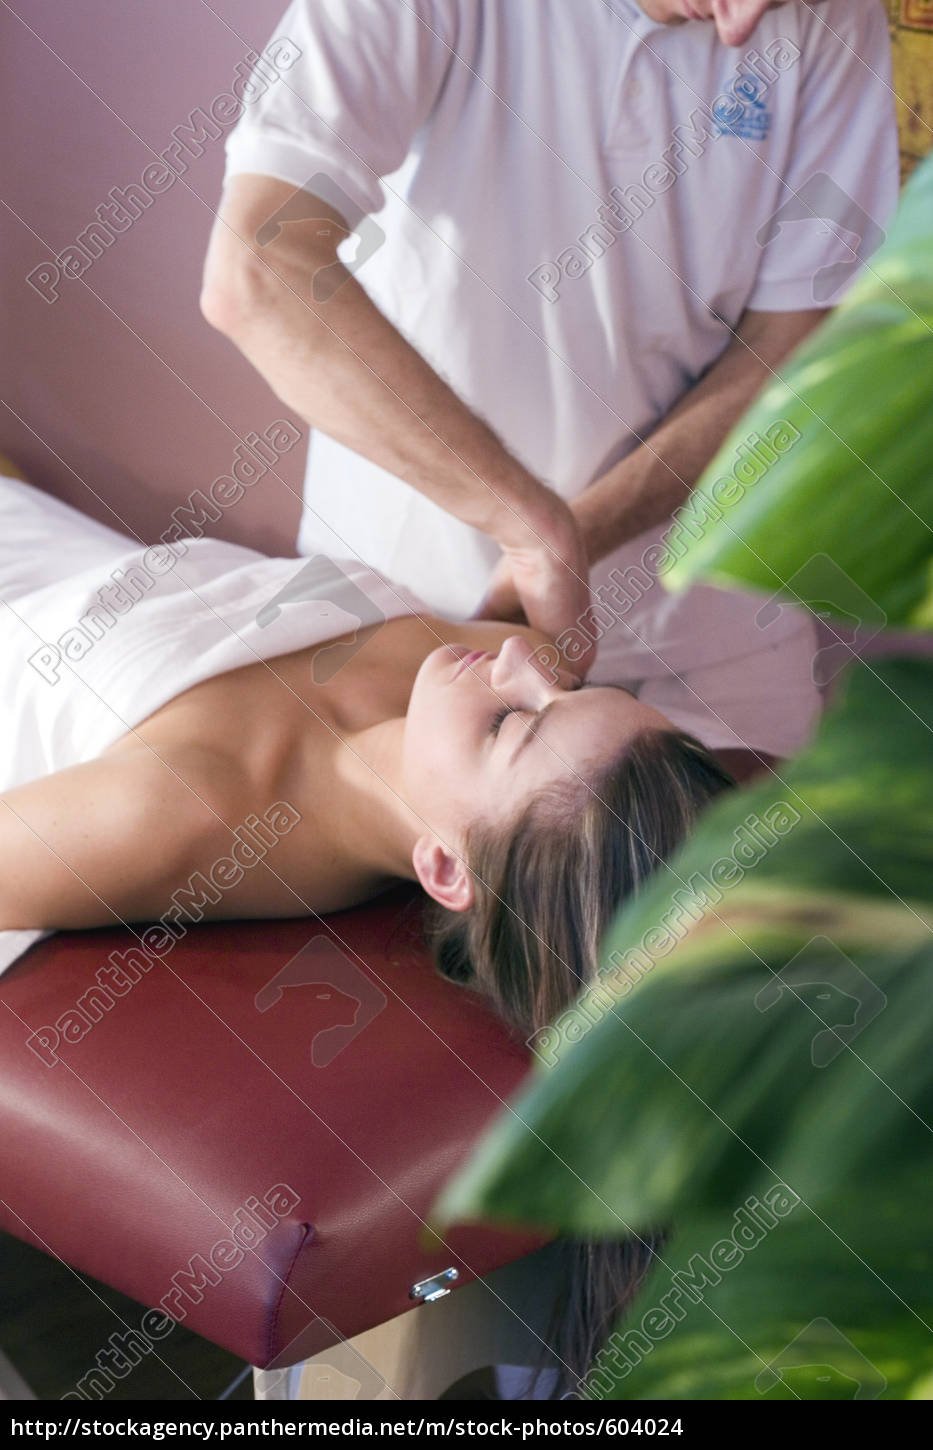 massage, to, the, shoulder - 604024